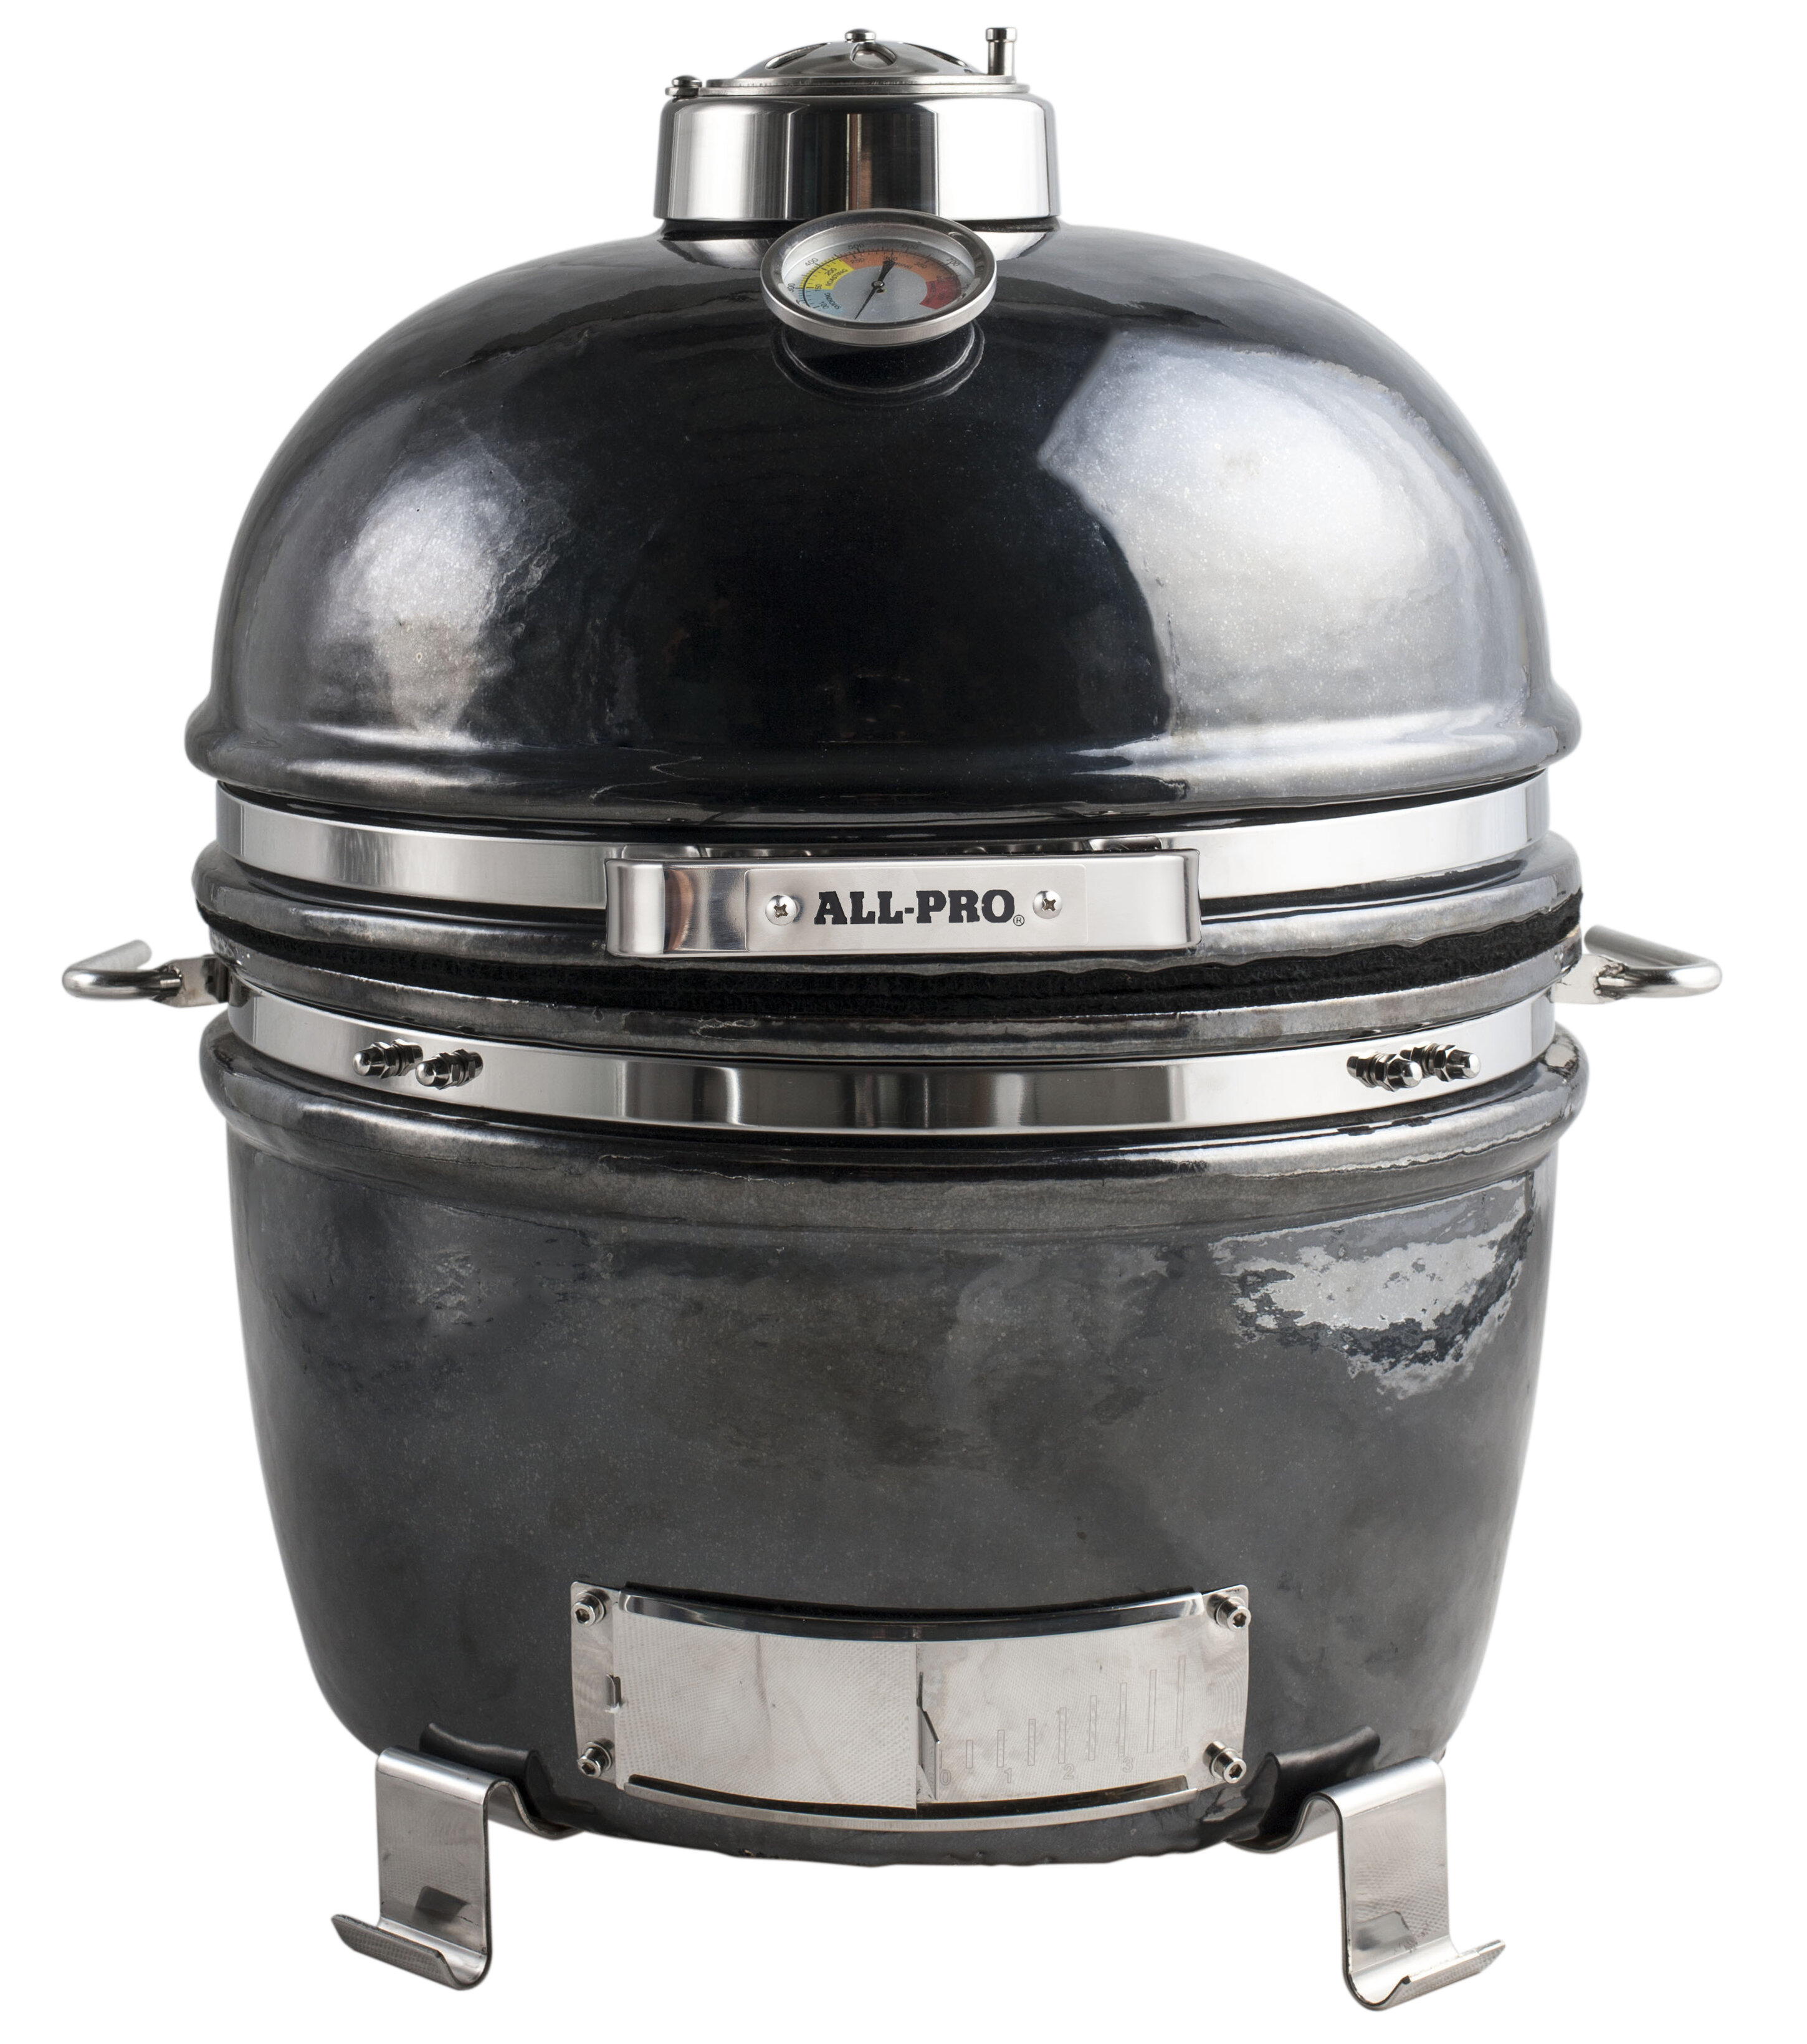 "Backyard Charcoal Grill all-pro 11"" convenience series backyard cooker charcoal grill 